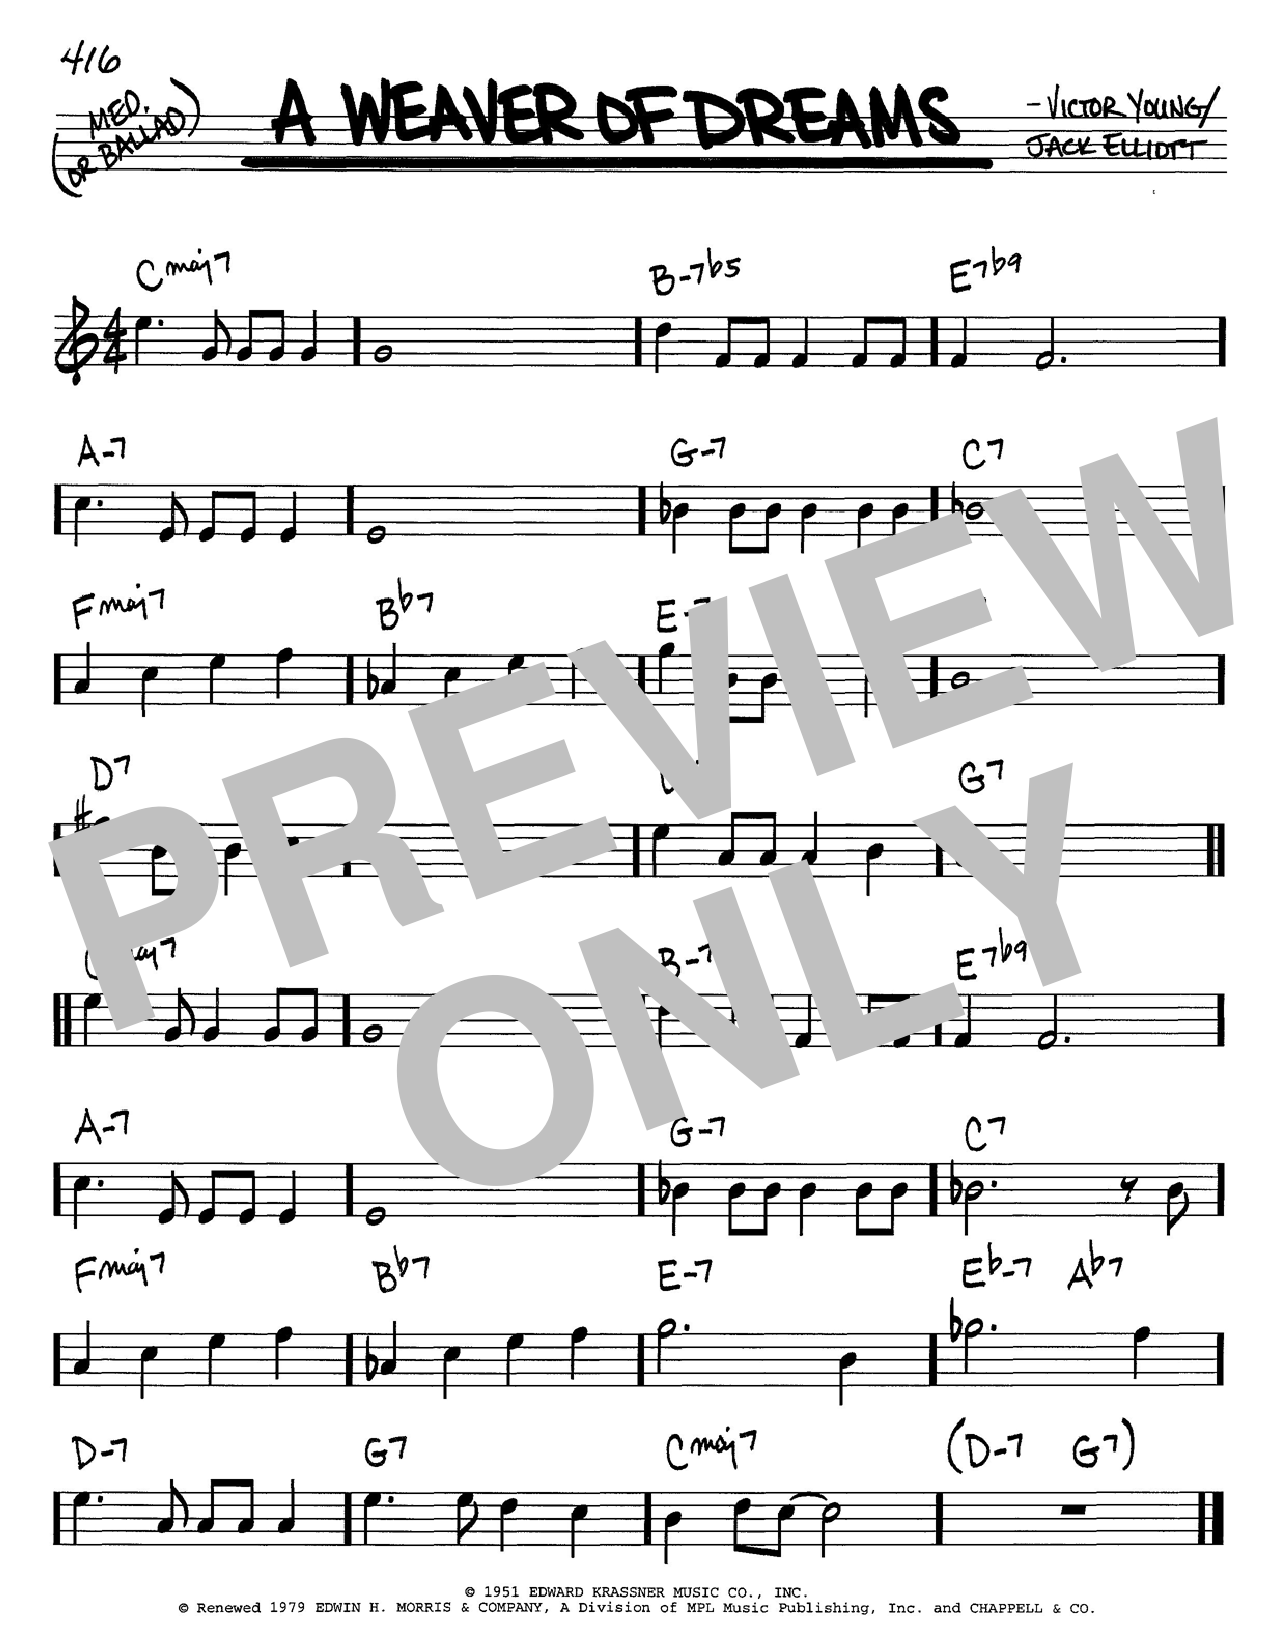 Victor Young A Weaver Of Dreams sheet music notes and chords. Download Printable PDF.